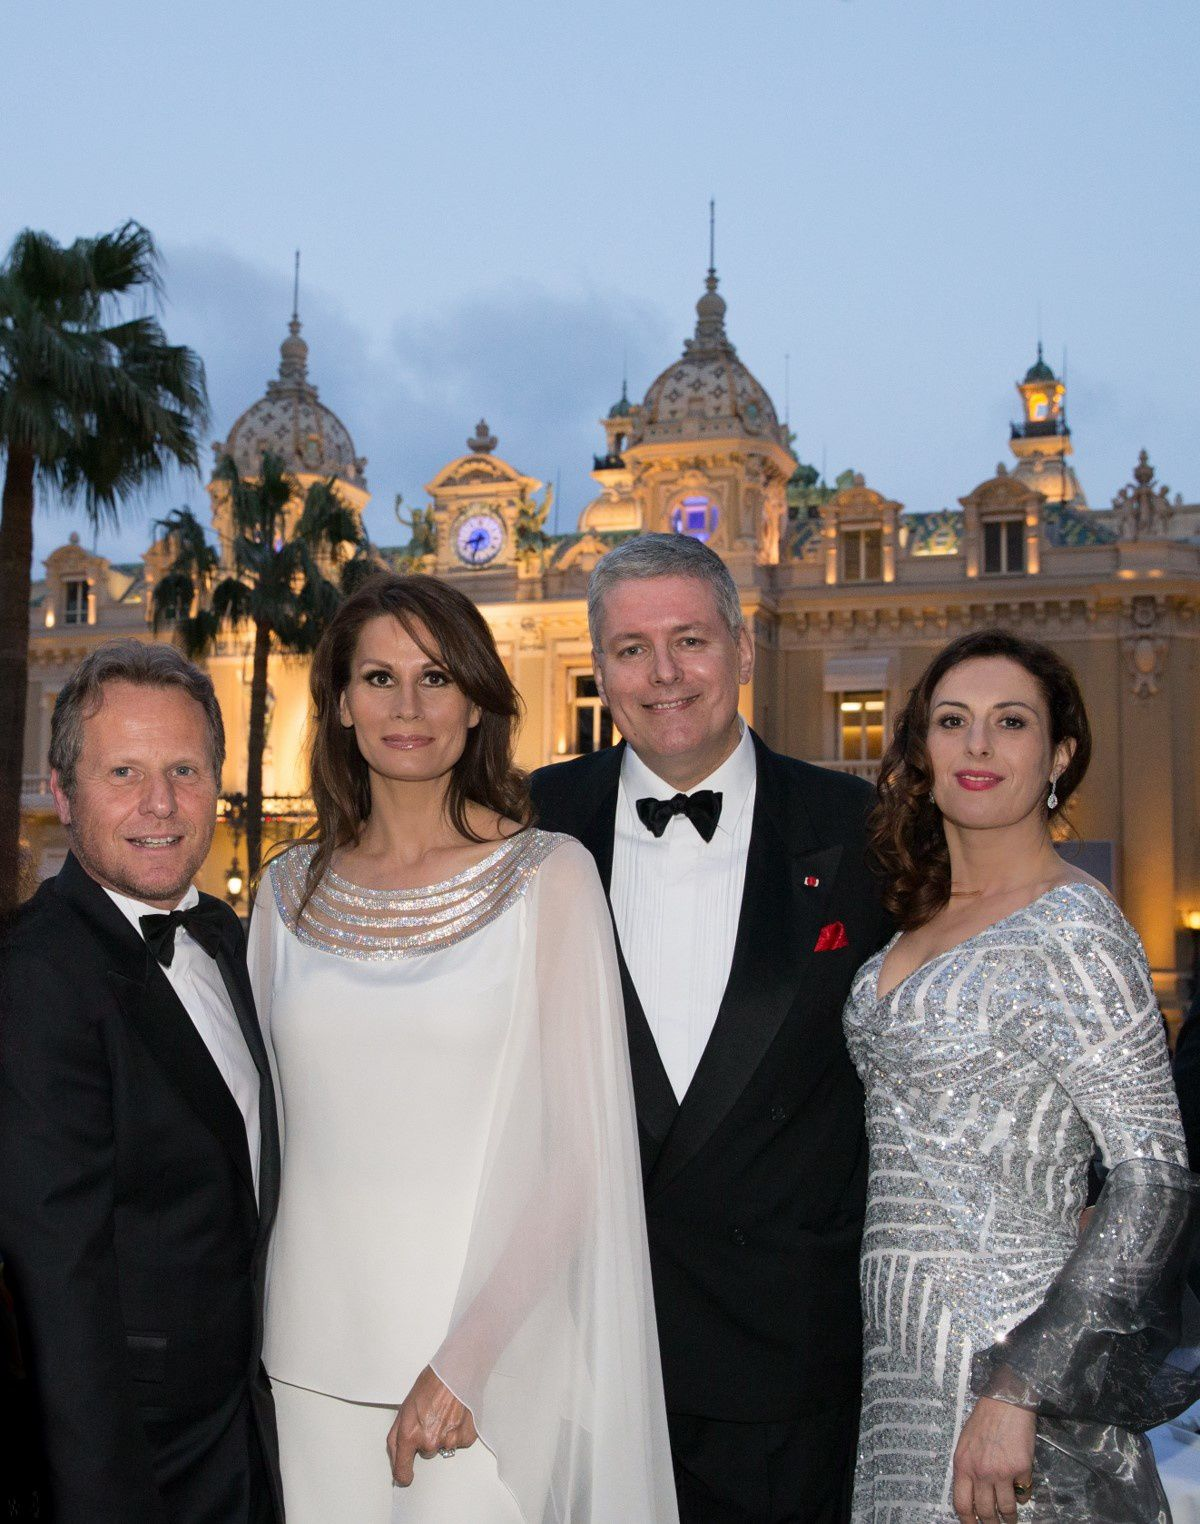 MR CLARENS ISABELL KRISTENSEN CROWN PRINCE OF MONTENEGRO AND MACEDONIA LA MARQUISE STEFANIA VOLIA